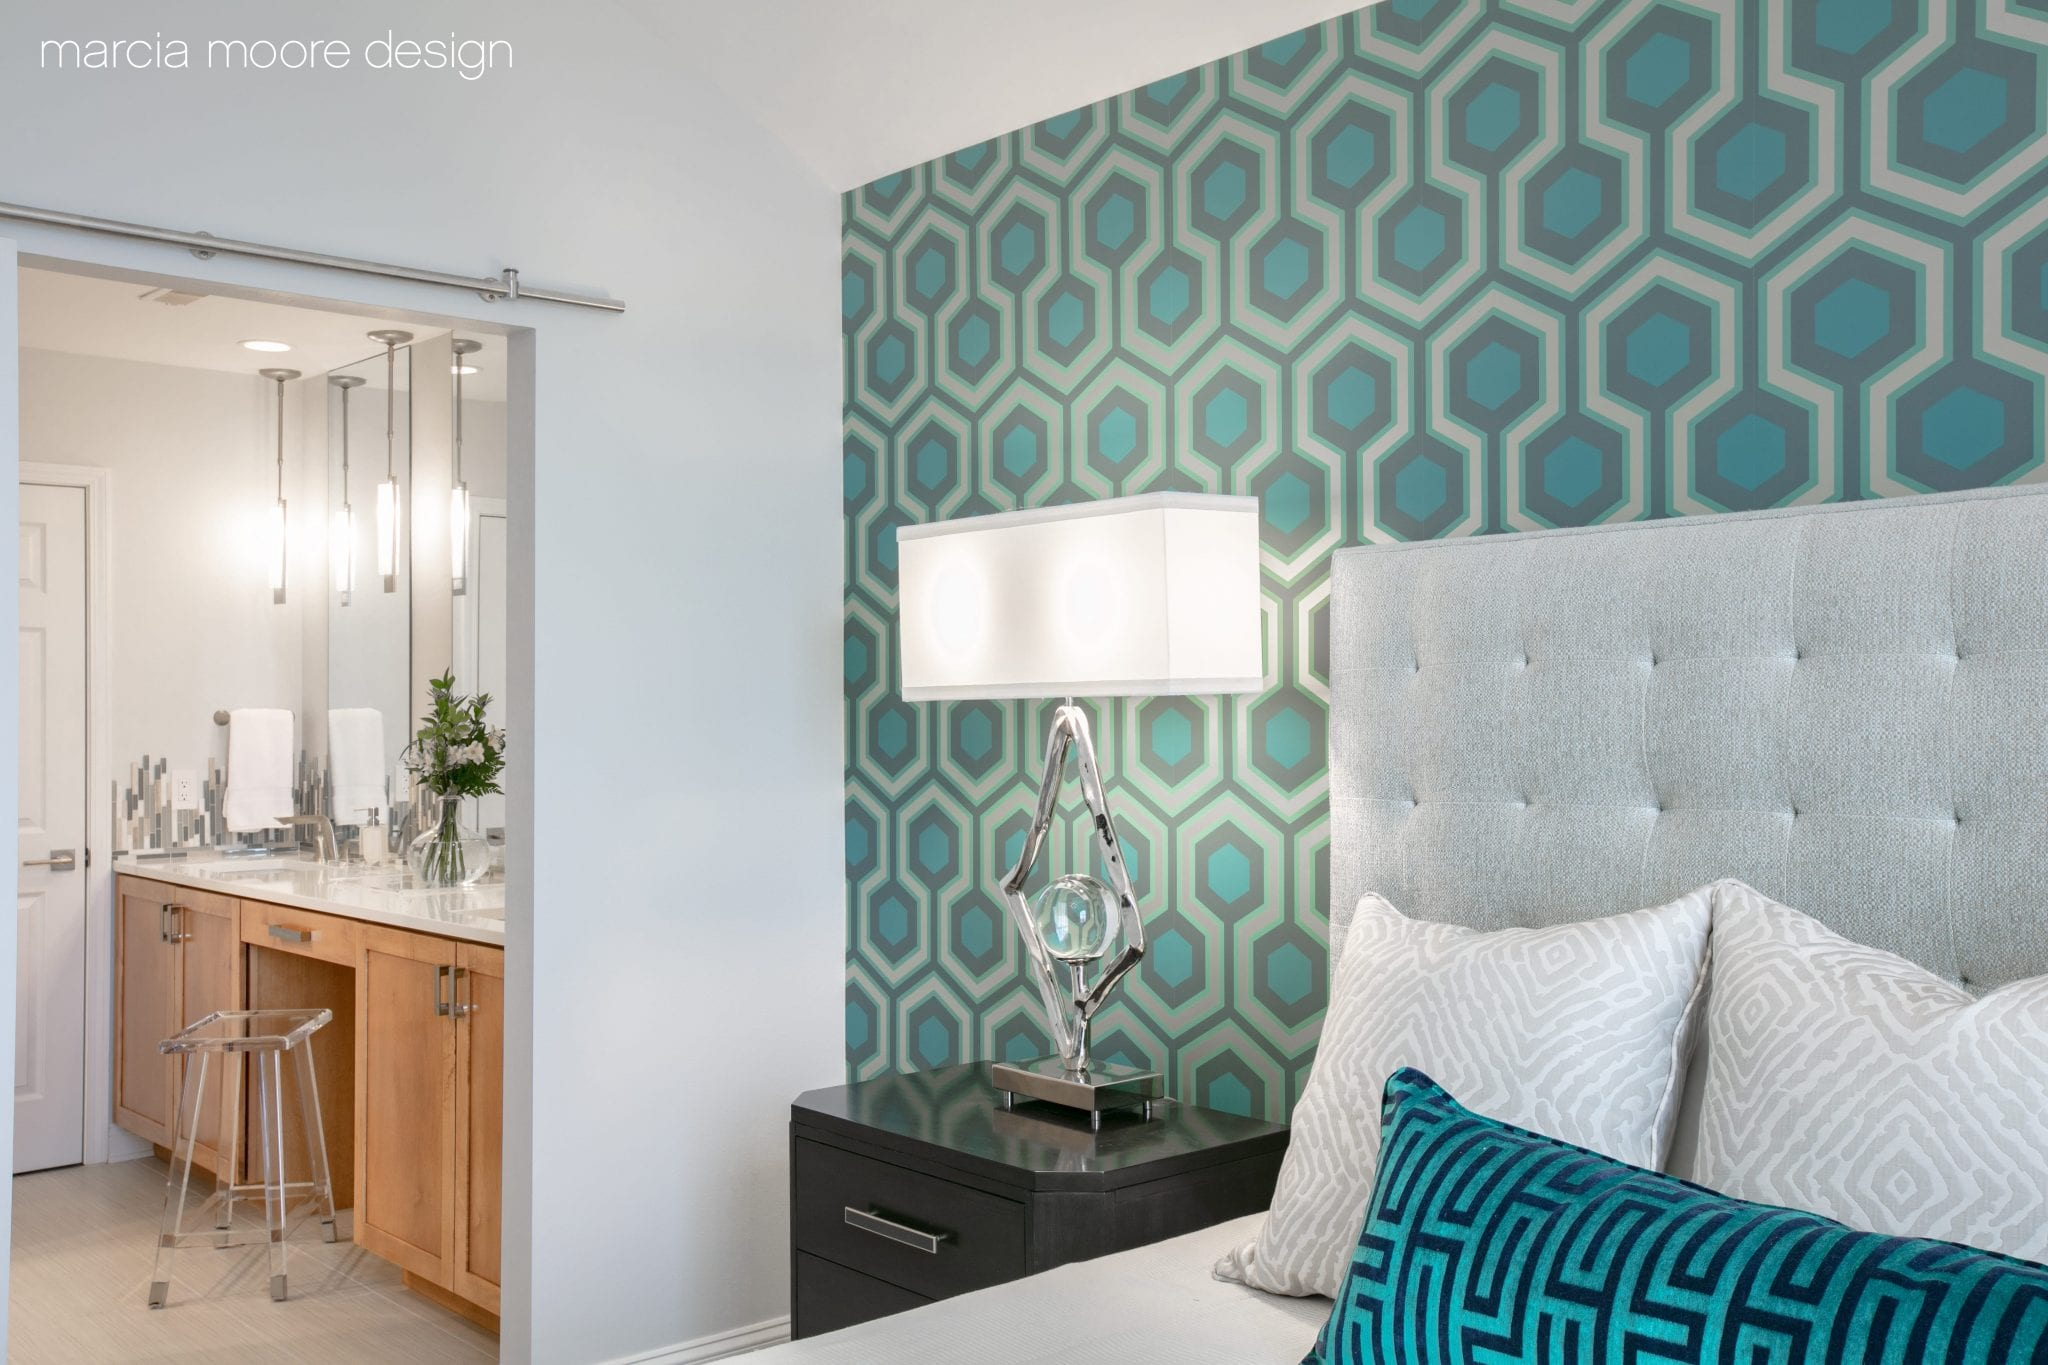 Teal and white pillows on the bed